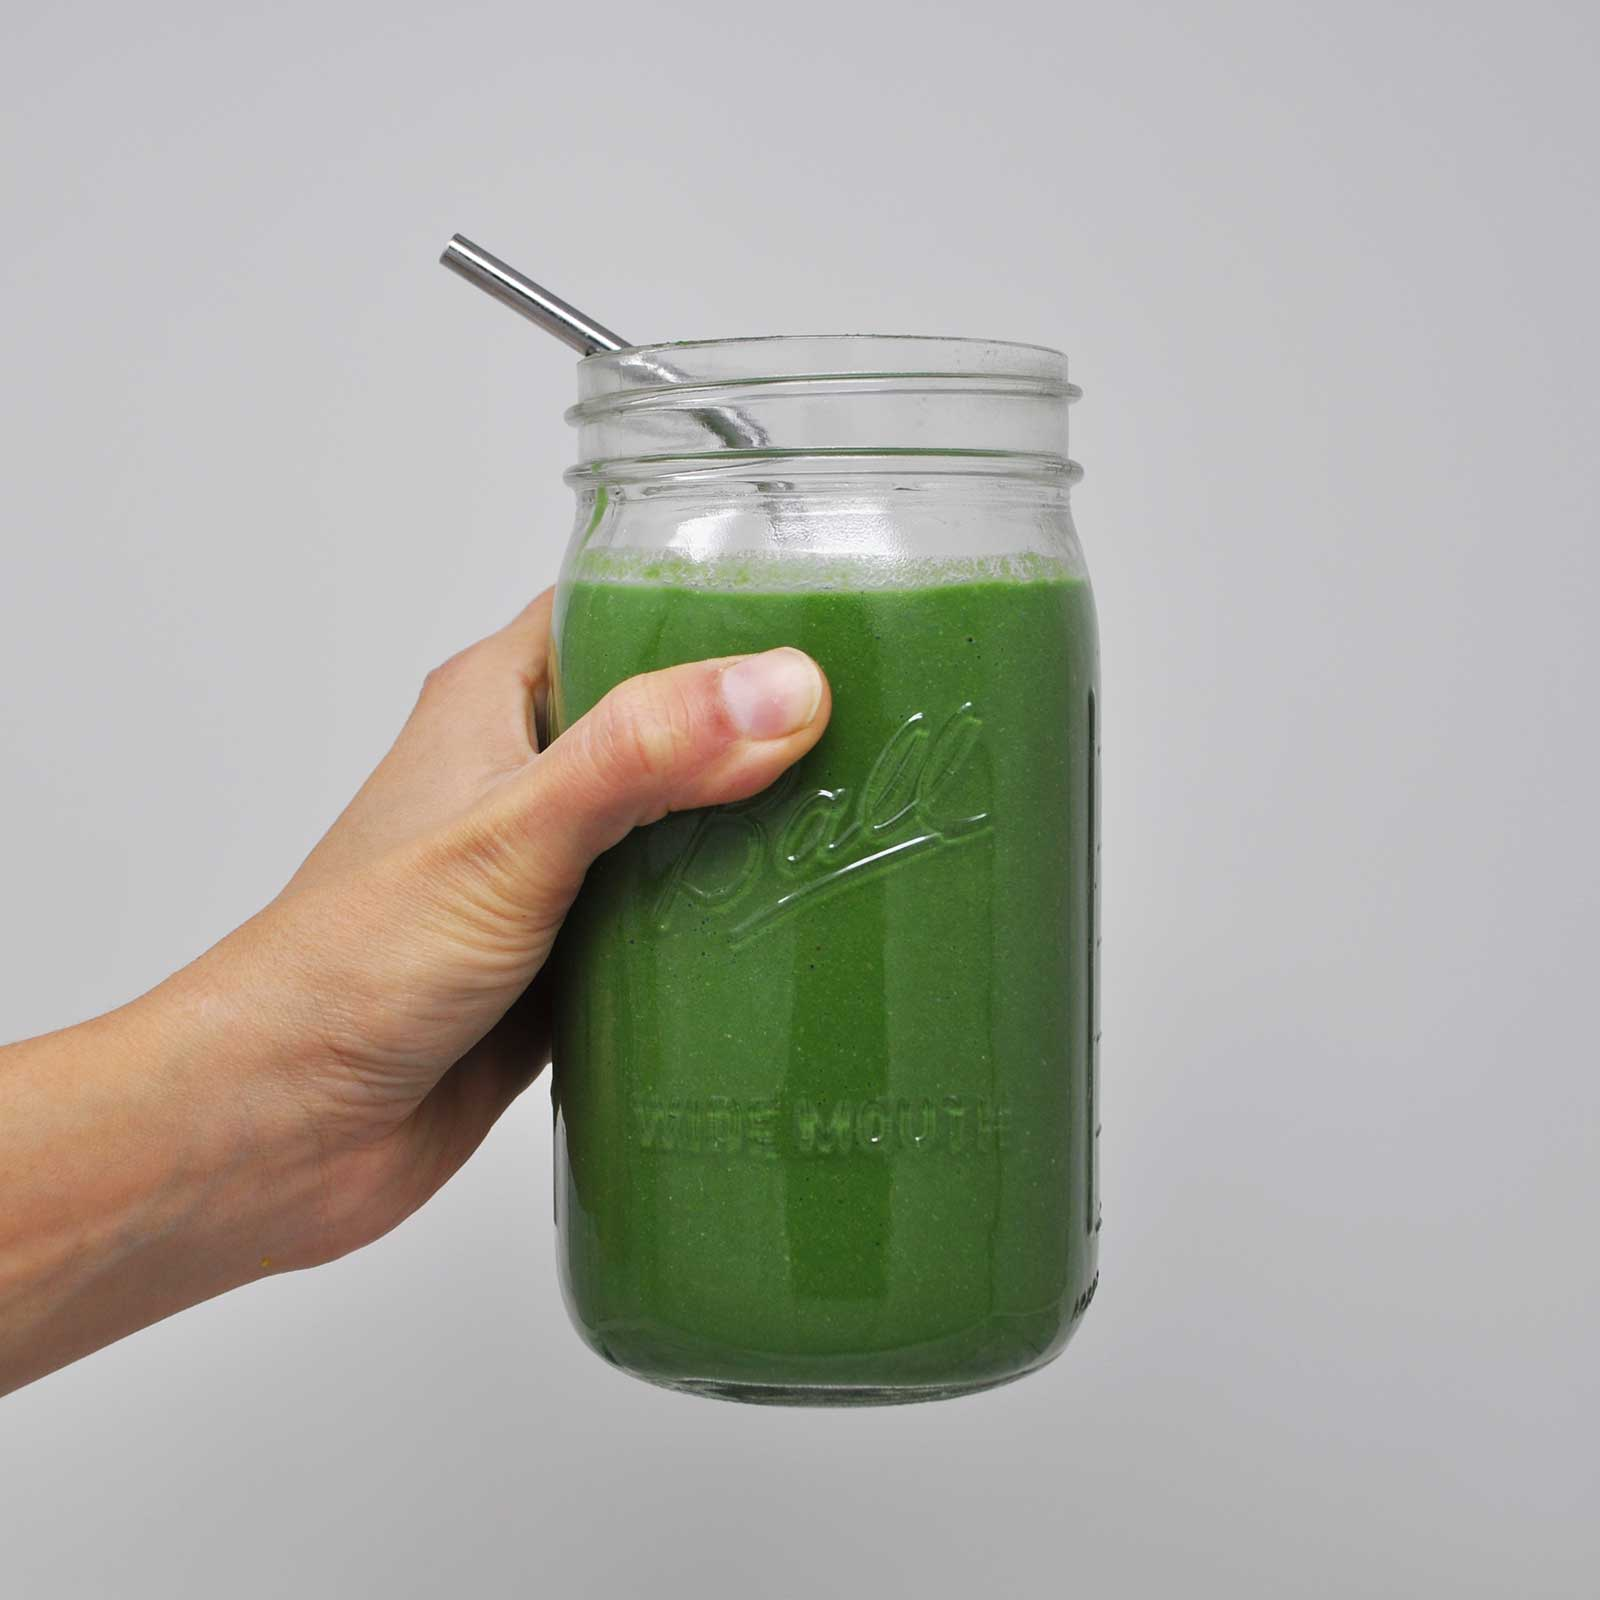 Image of a hand holding a glass jar filled with a green smoothie and a metal straw